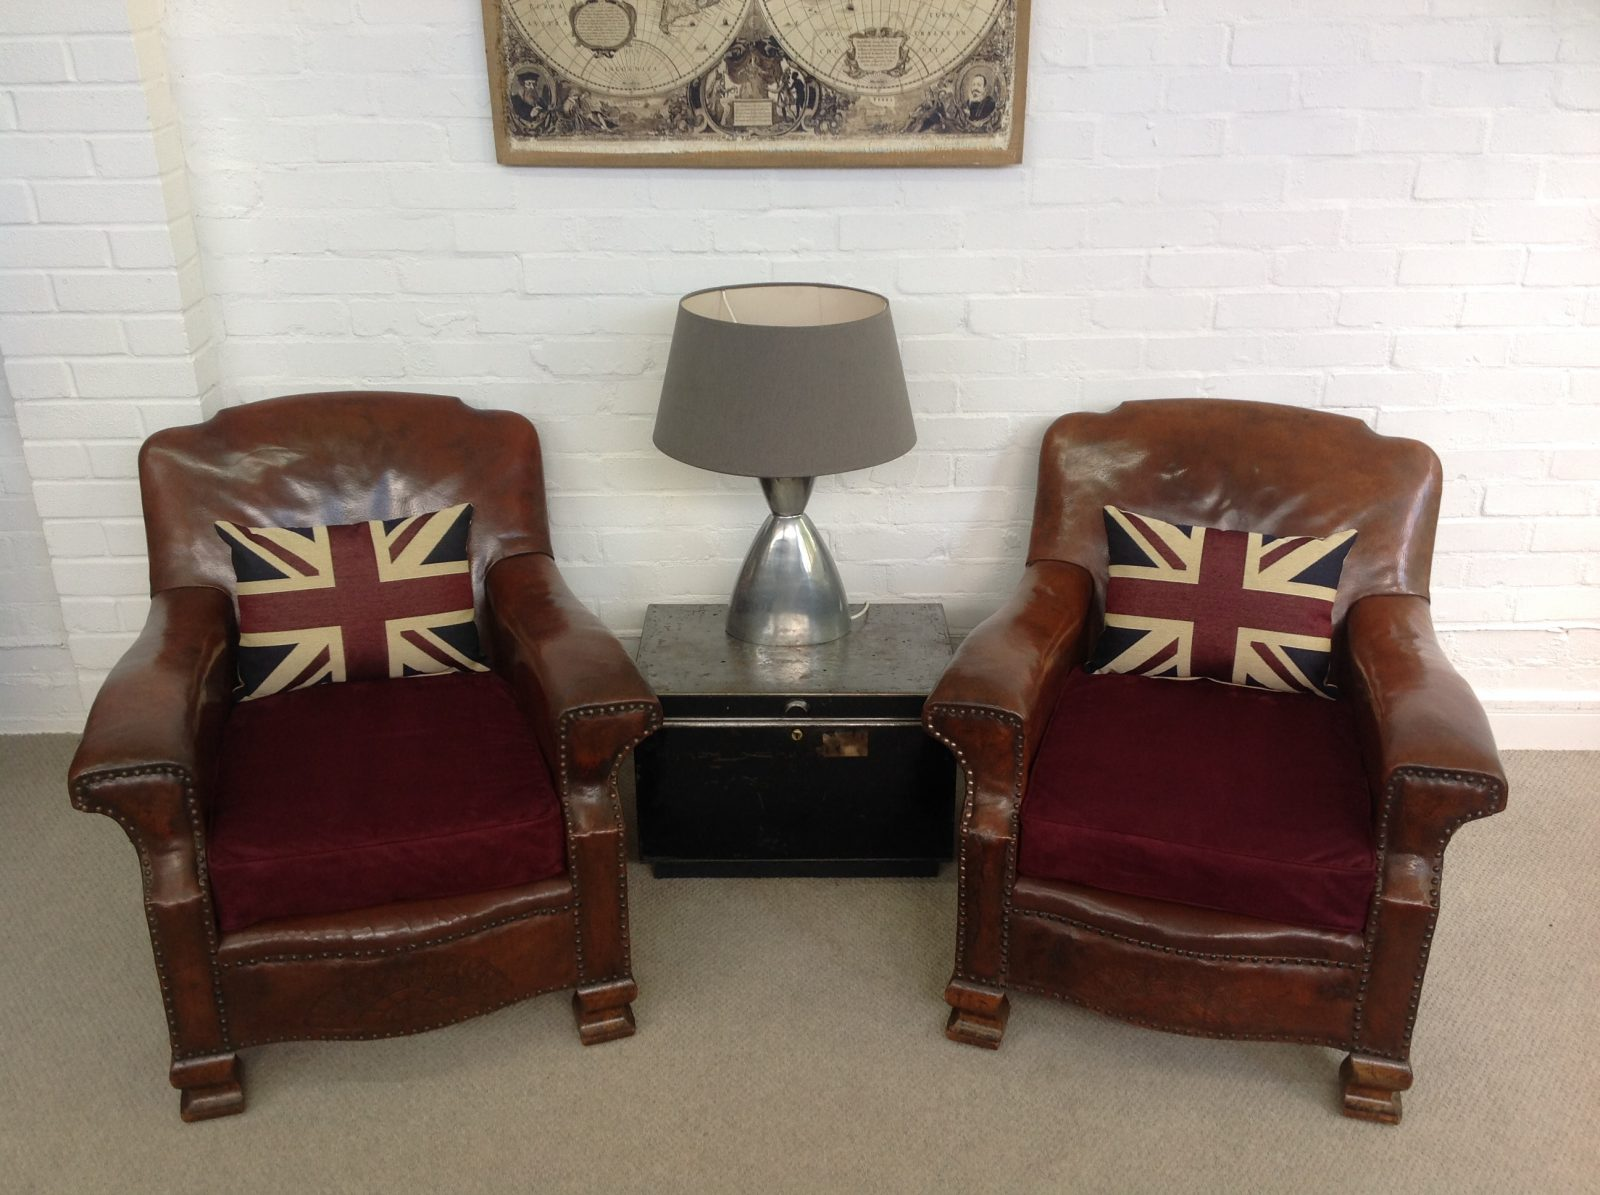 Matching Pair Of Rare 1920's Leather Fireside Armchairs.